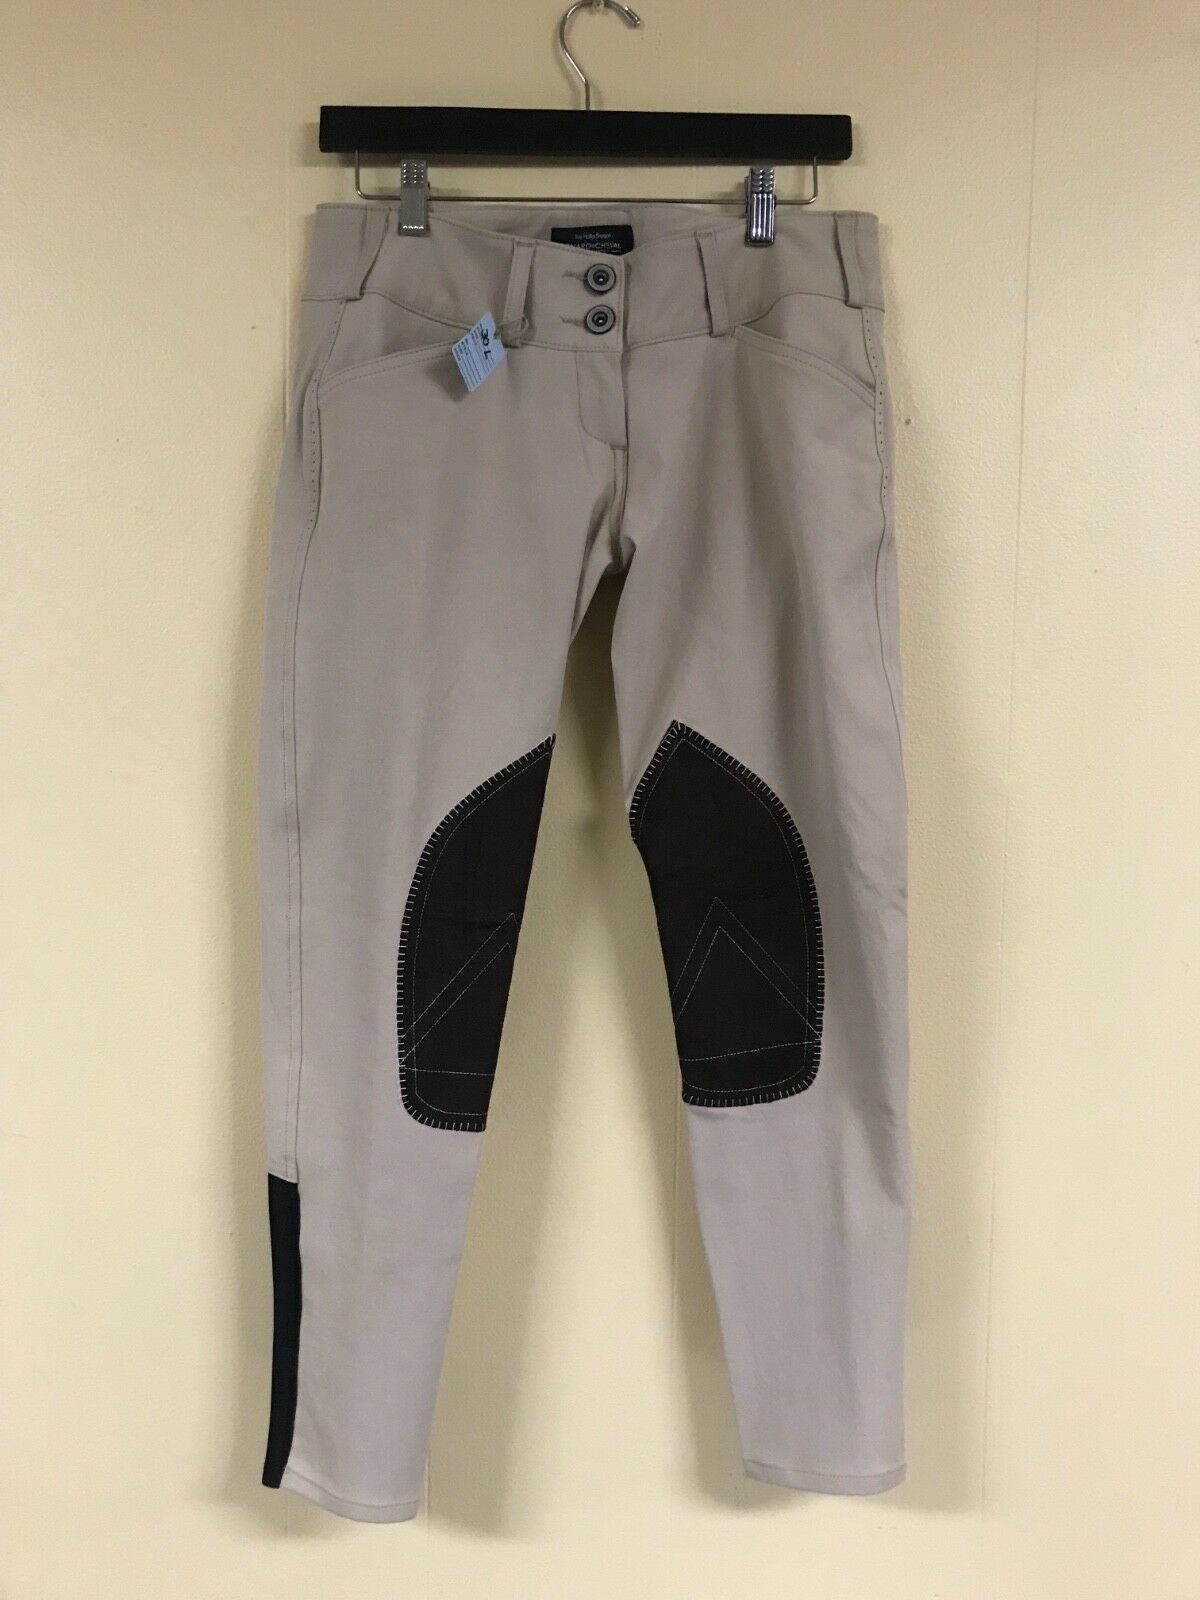 Renard et Cheval  Breeches, Size 32, Low Rise  hot sports